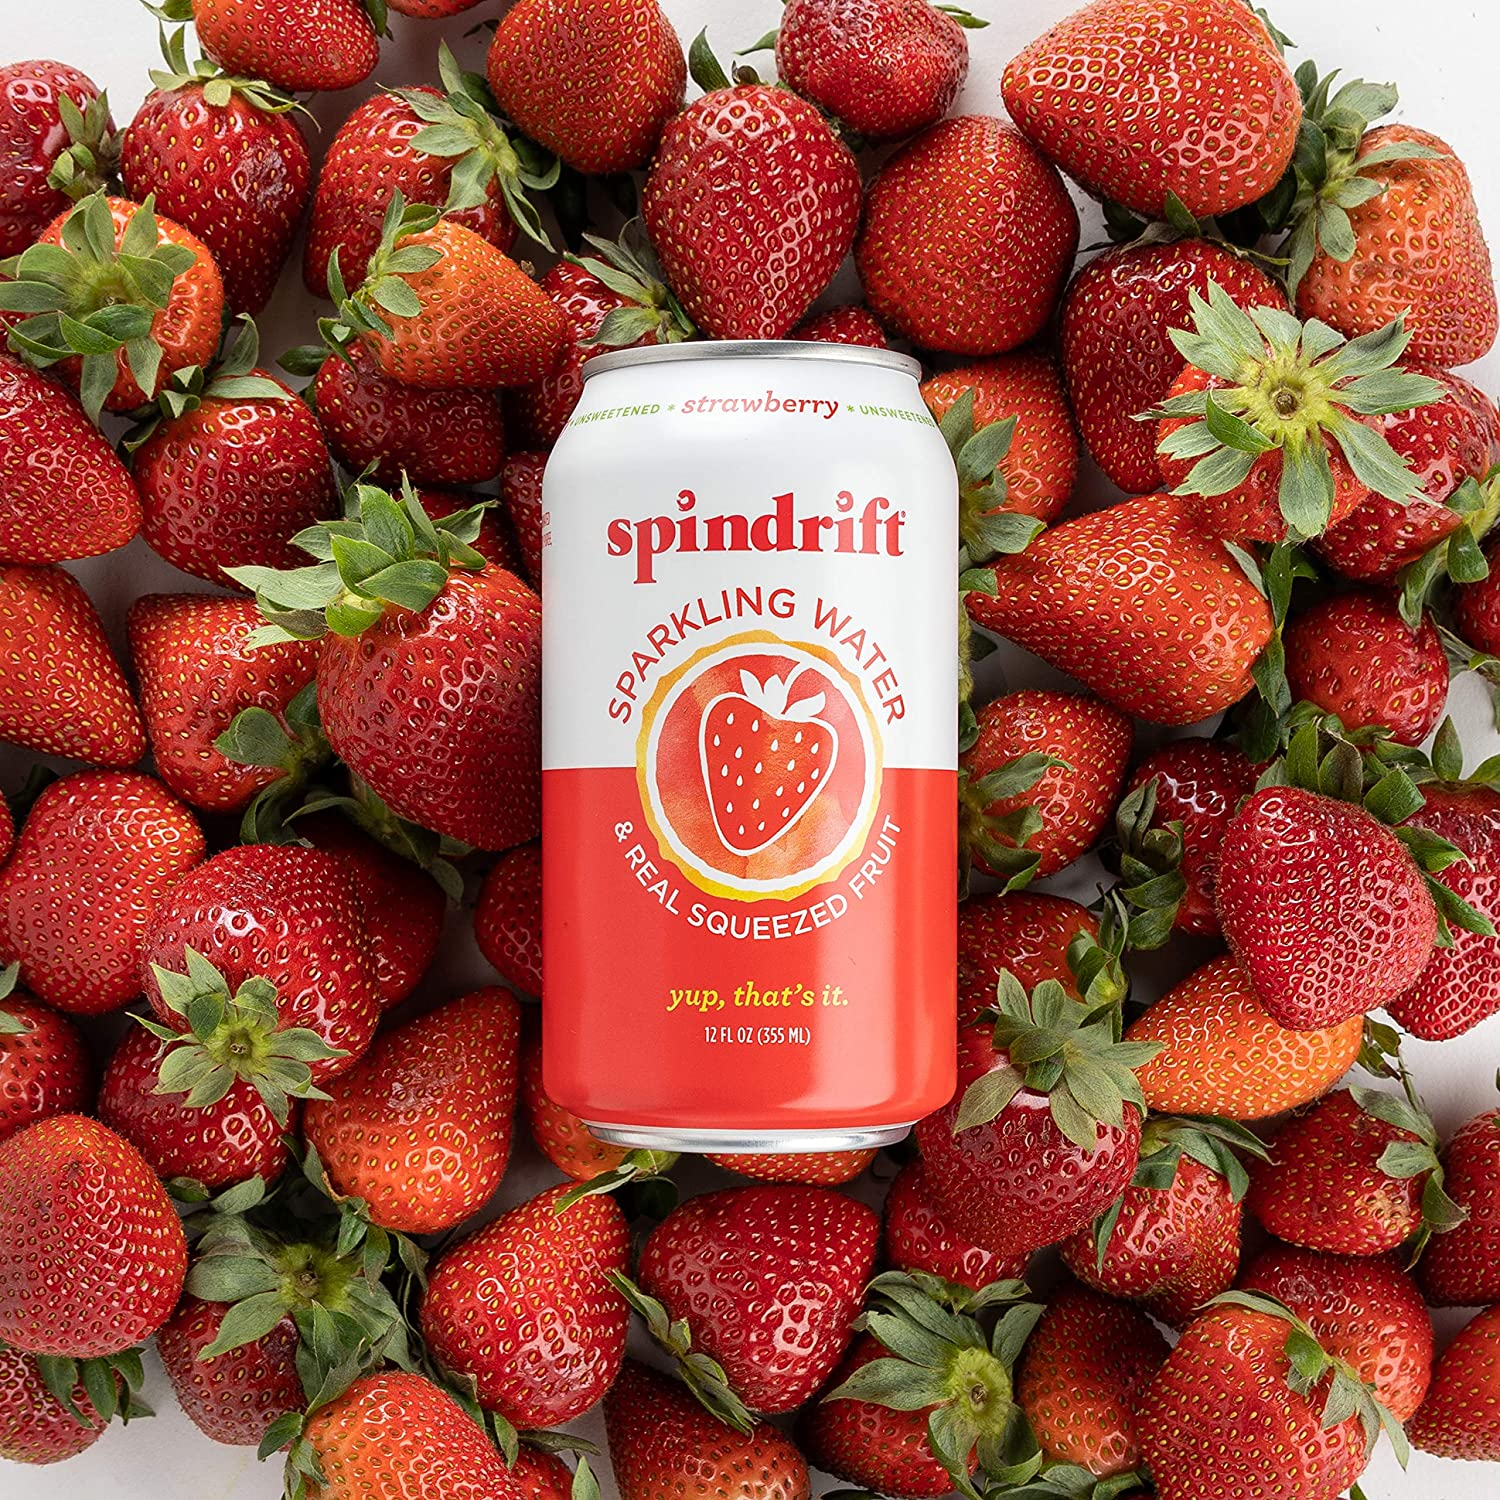 Spindrift Sparkling Water, Strawberry Flavored, Made with Real Squeezed Fruit, 12 Fl Oz Cans, Pack of 24 (Only 9 Calories per Seltzer Water Can)